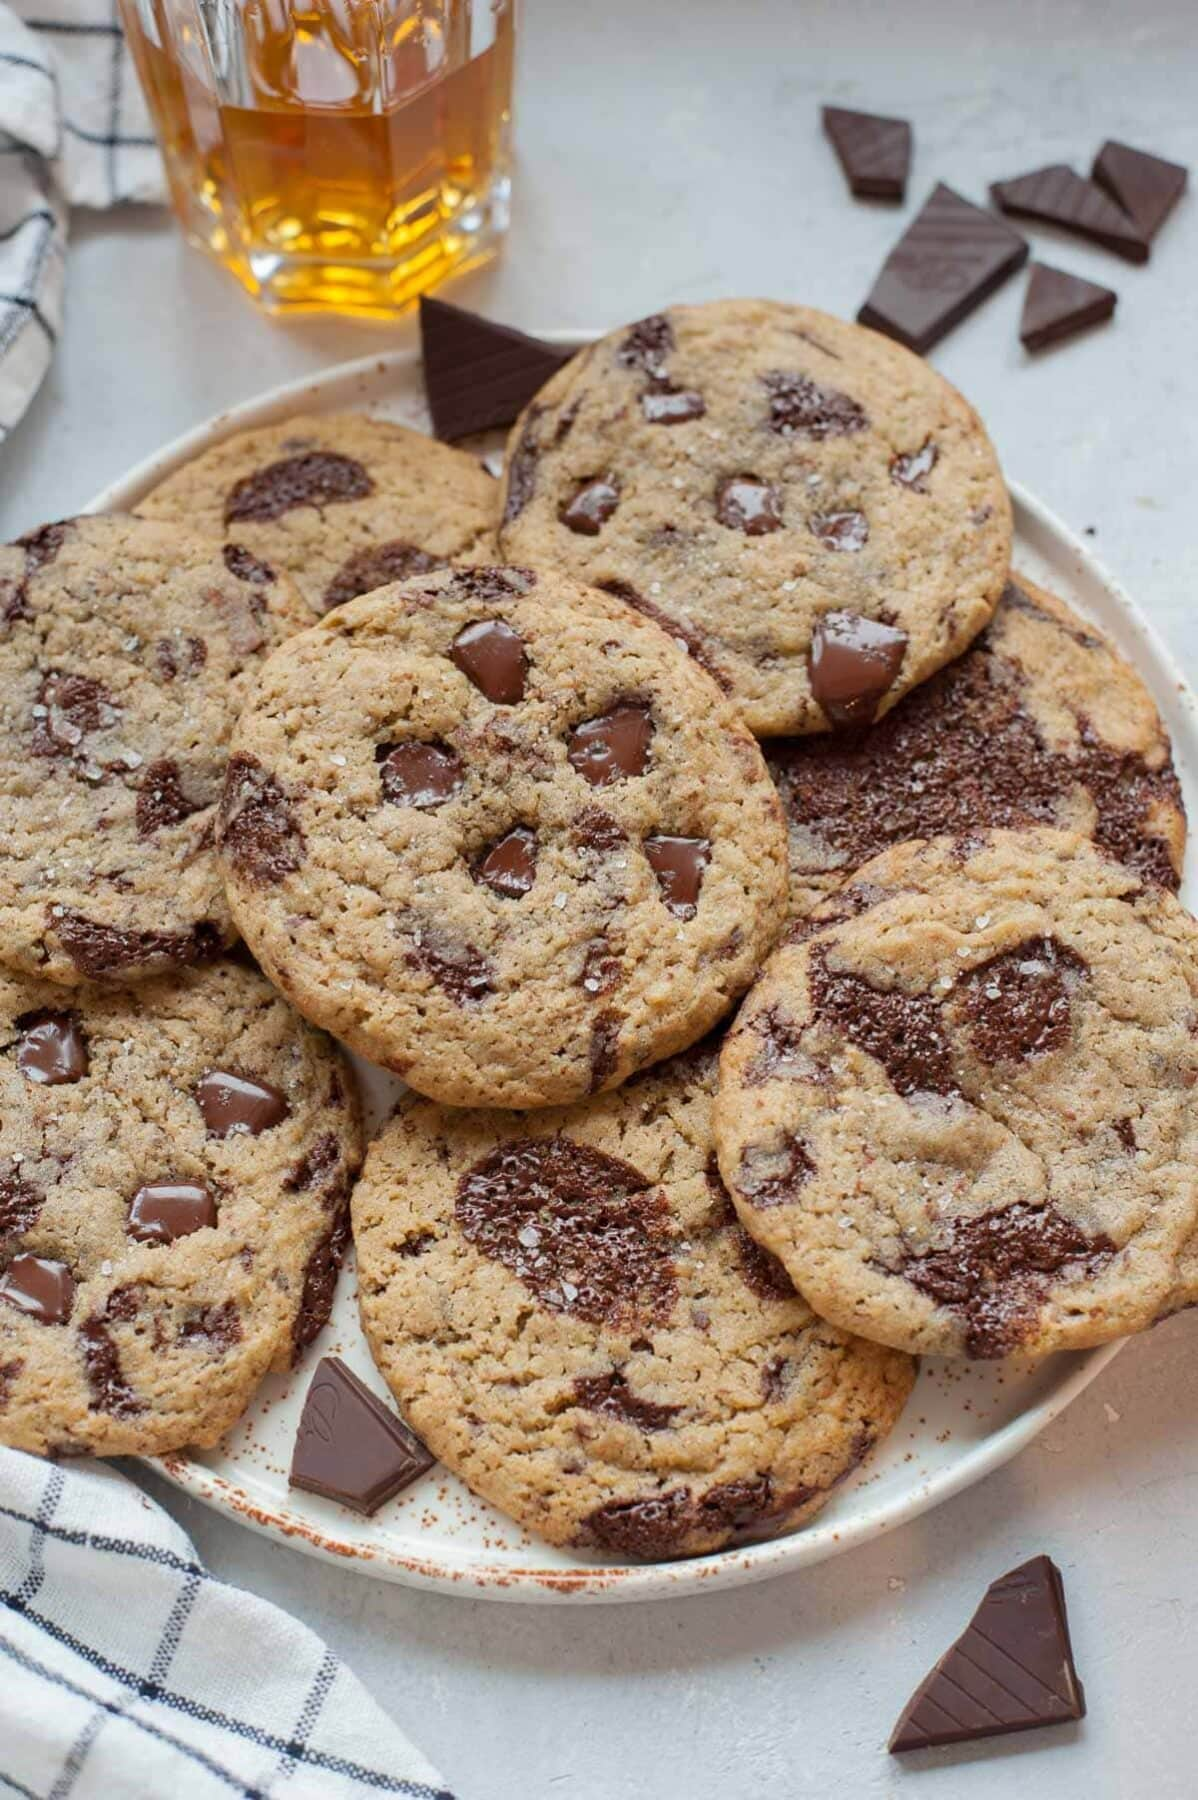 Rye chocolate chip cookies on a white plate. A glass with bourbon and chopped chocolate in the background.